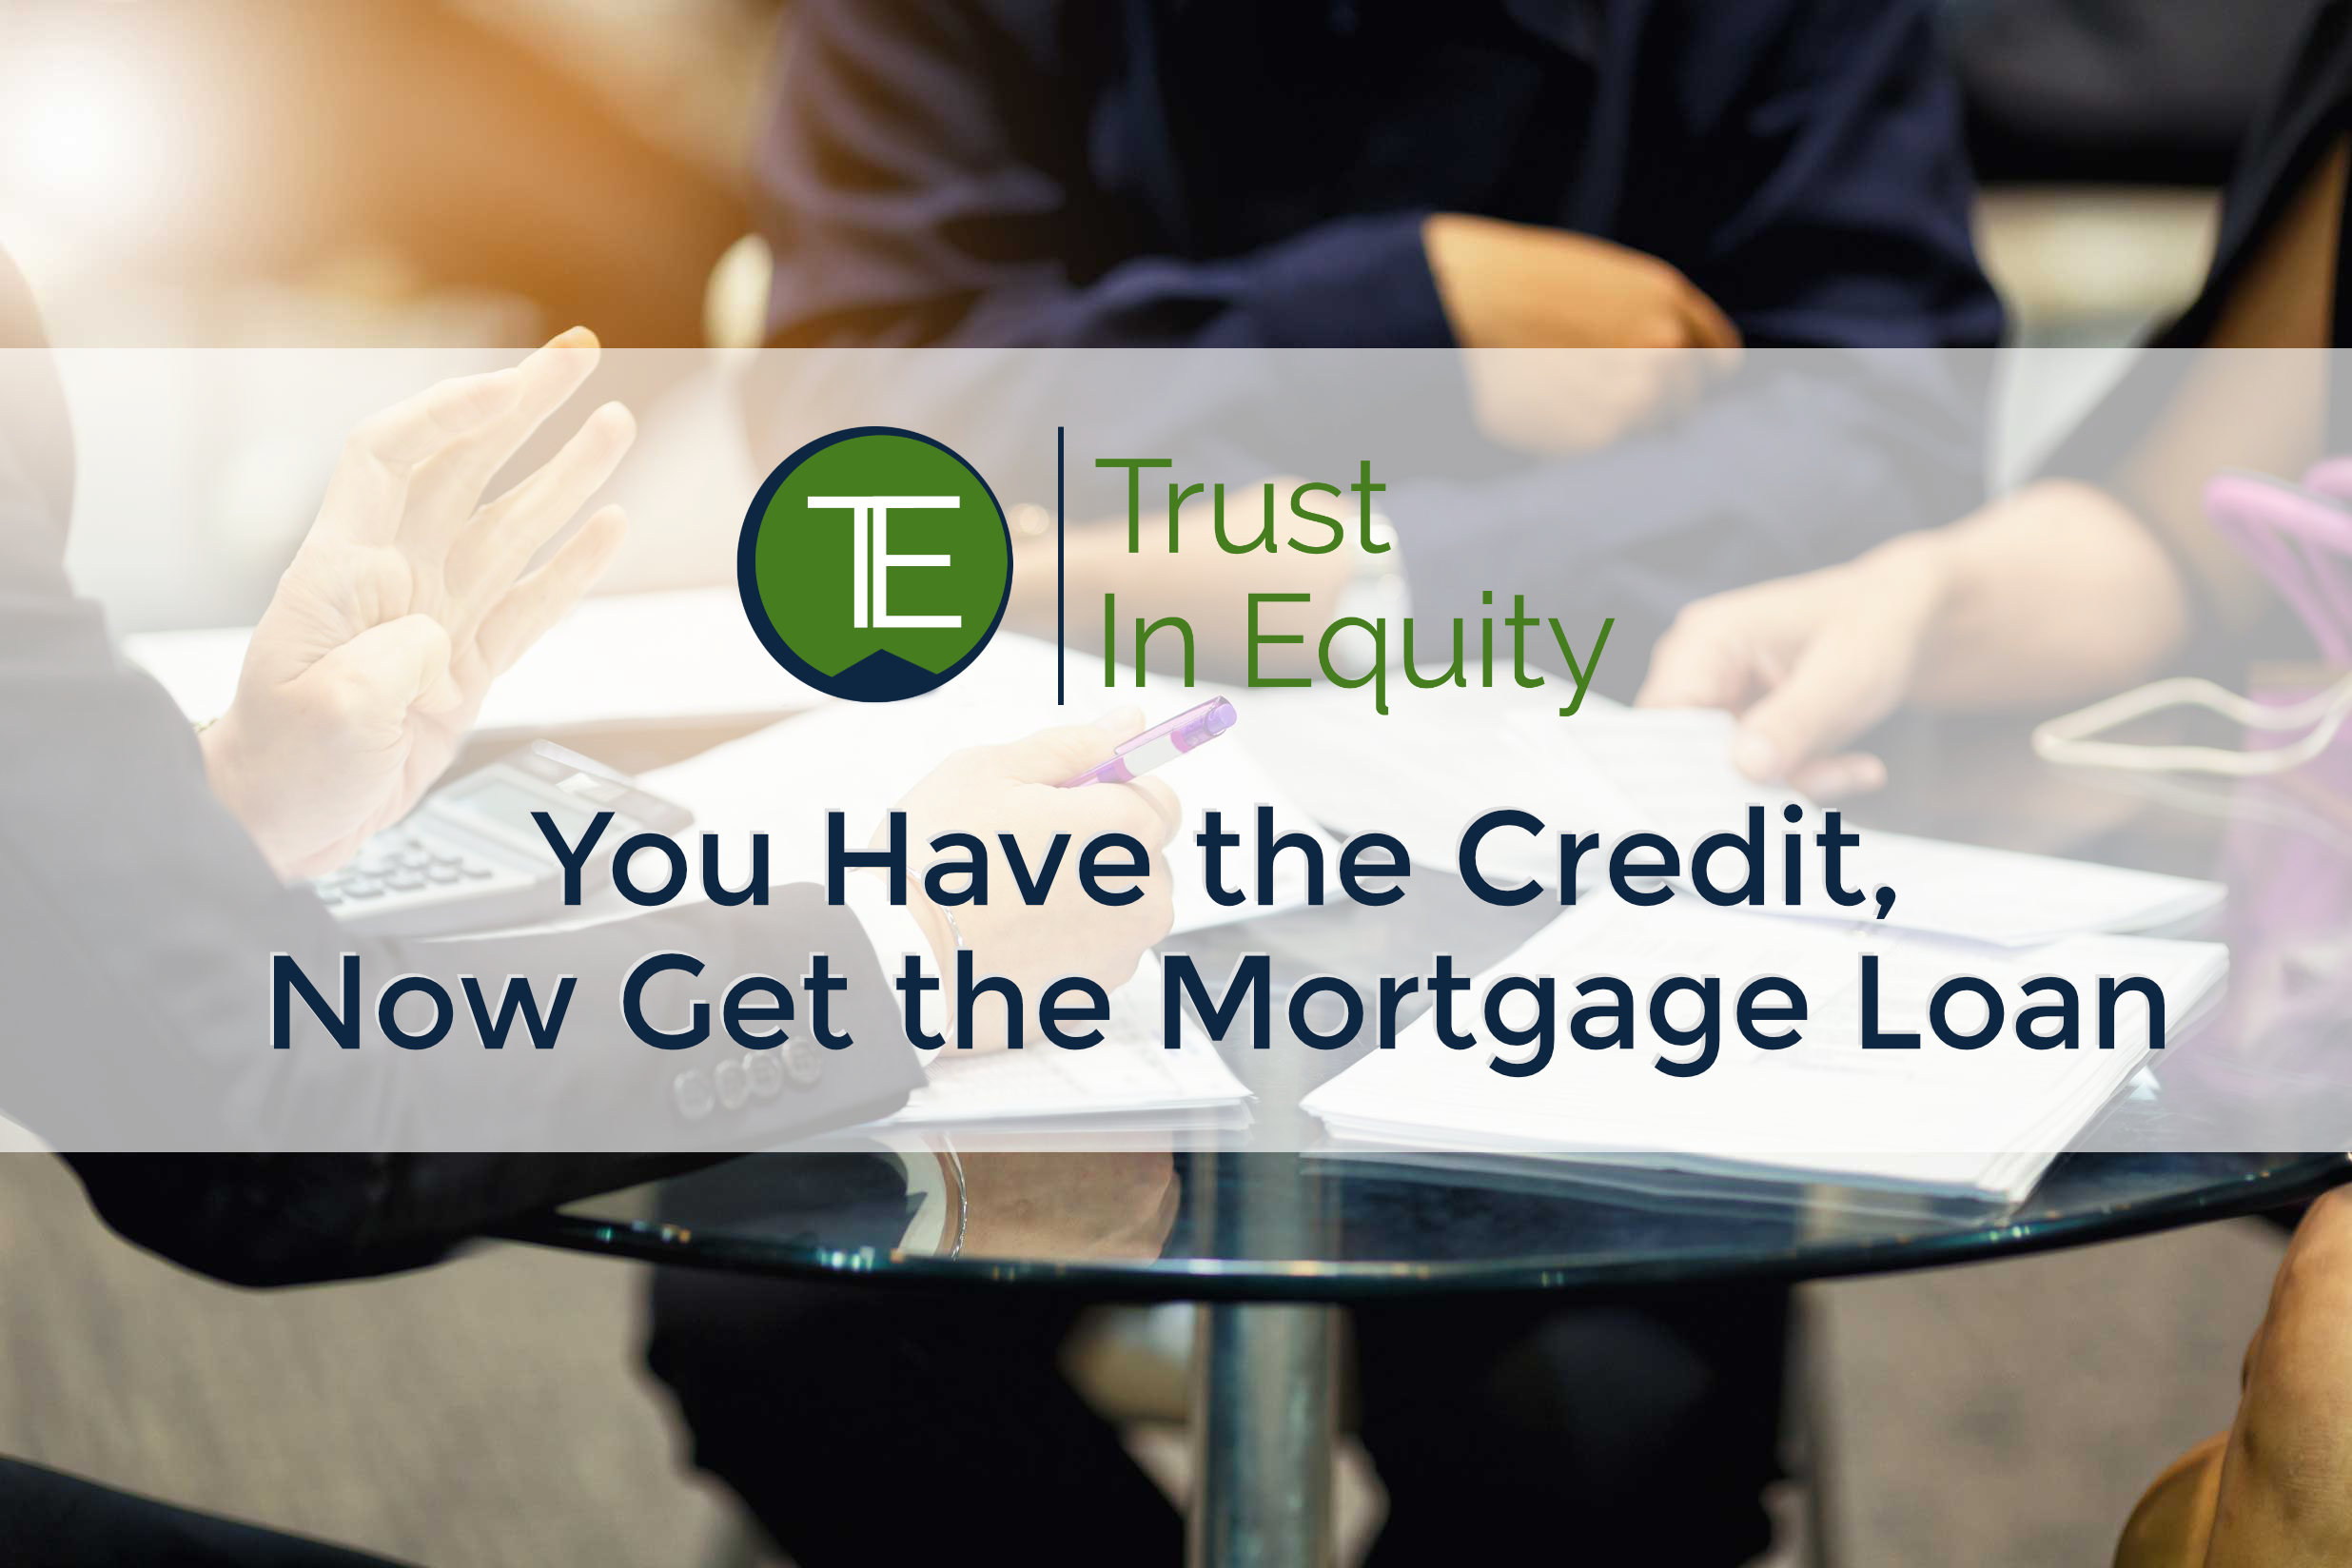 You Have the Credit, Now Get the Mortgage Loan